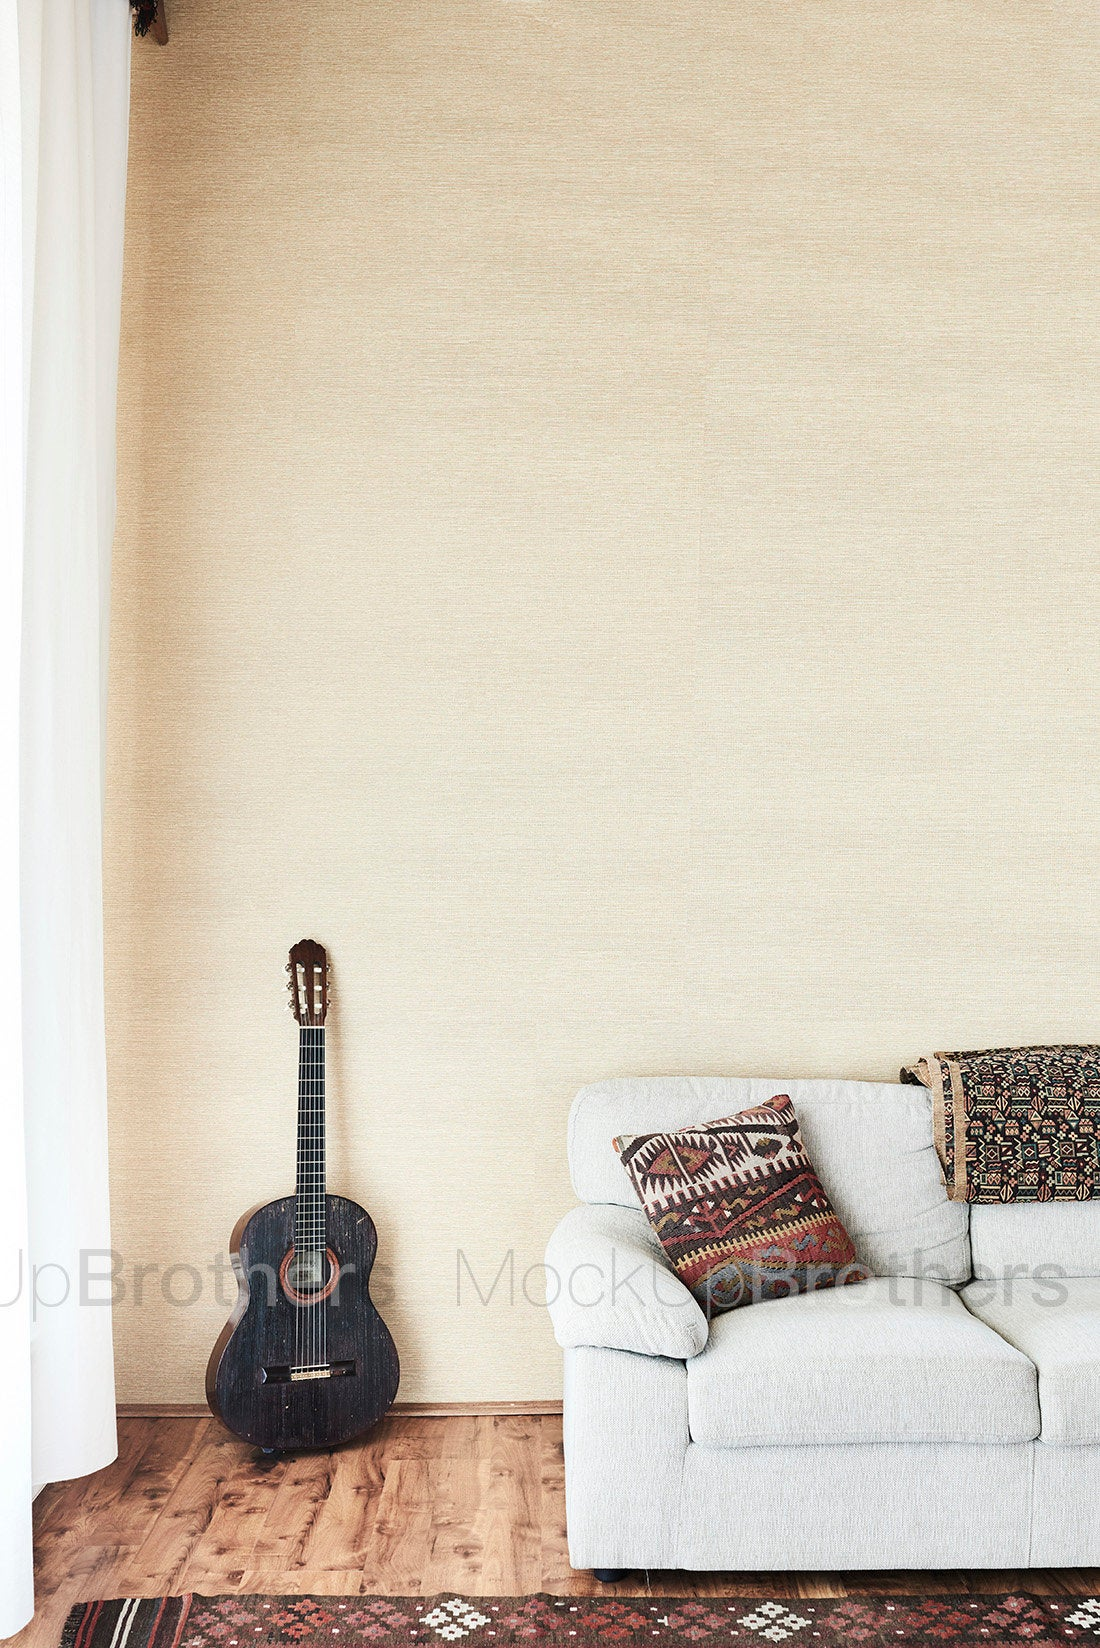 Living room stock photo with guitar